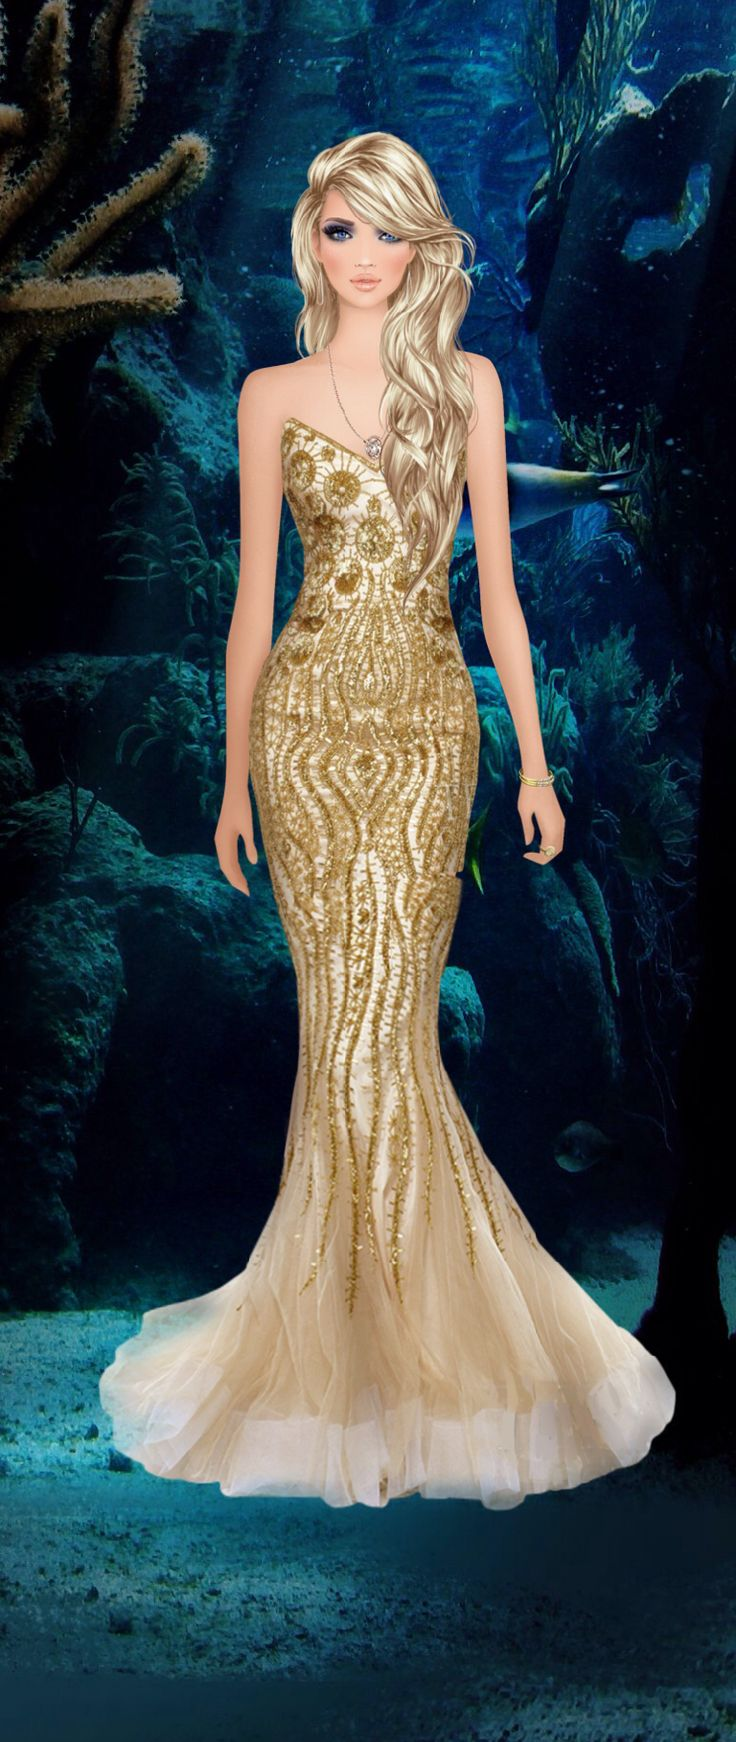 Golden Scales Winner 5 In 2019 Fashion Fashion